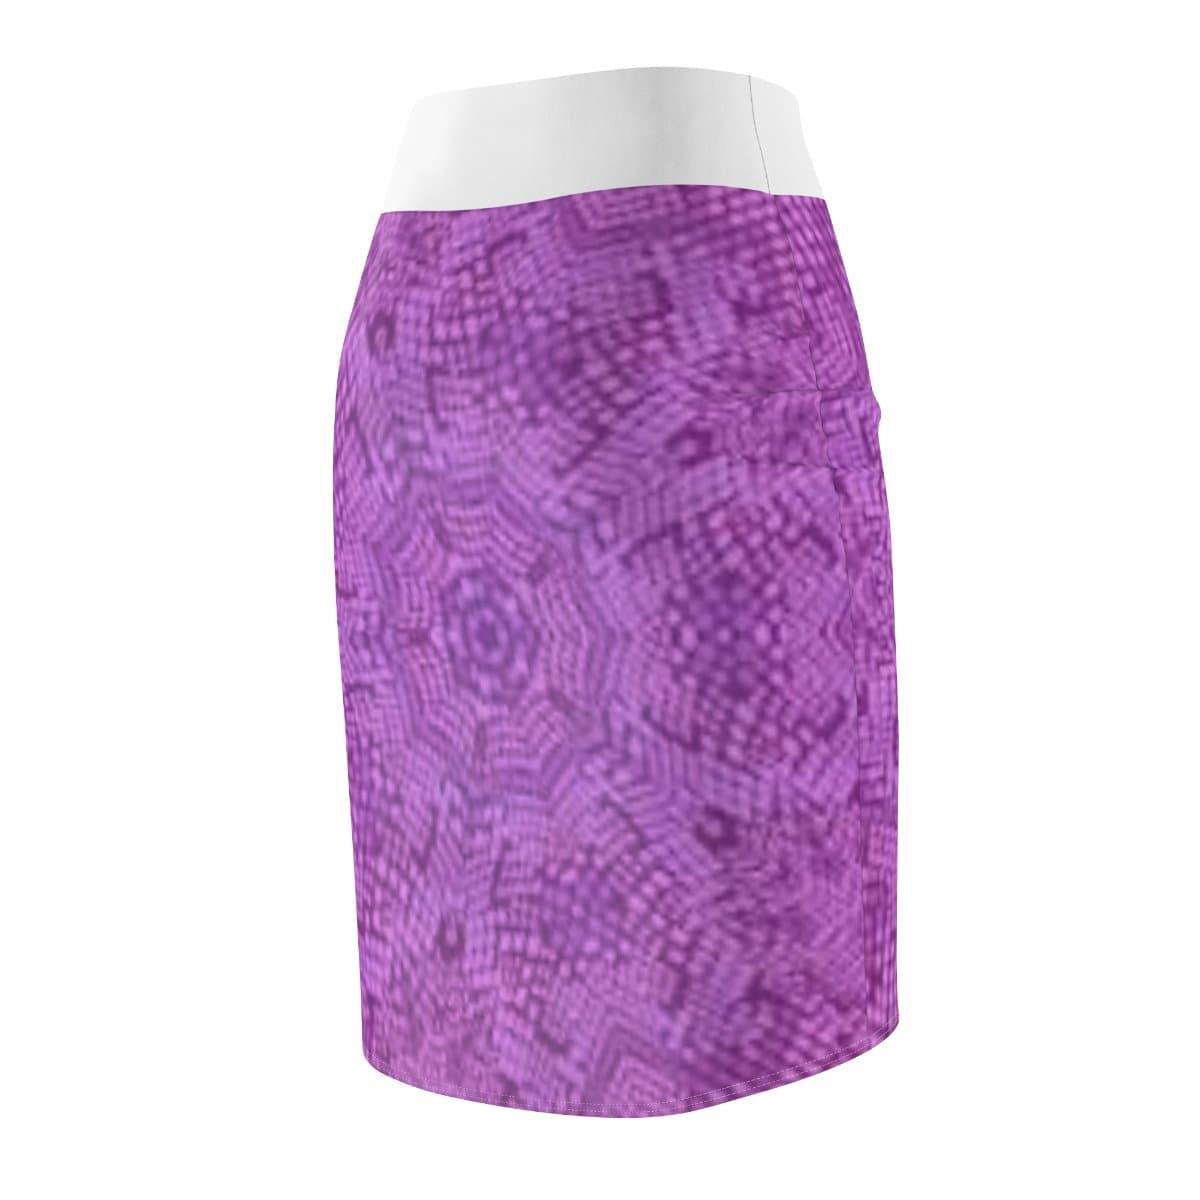 Royal Snakeskin Pencil Skirt Voluptuous (+) SIze Available - Tie-Fly